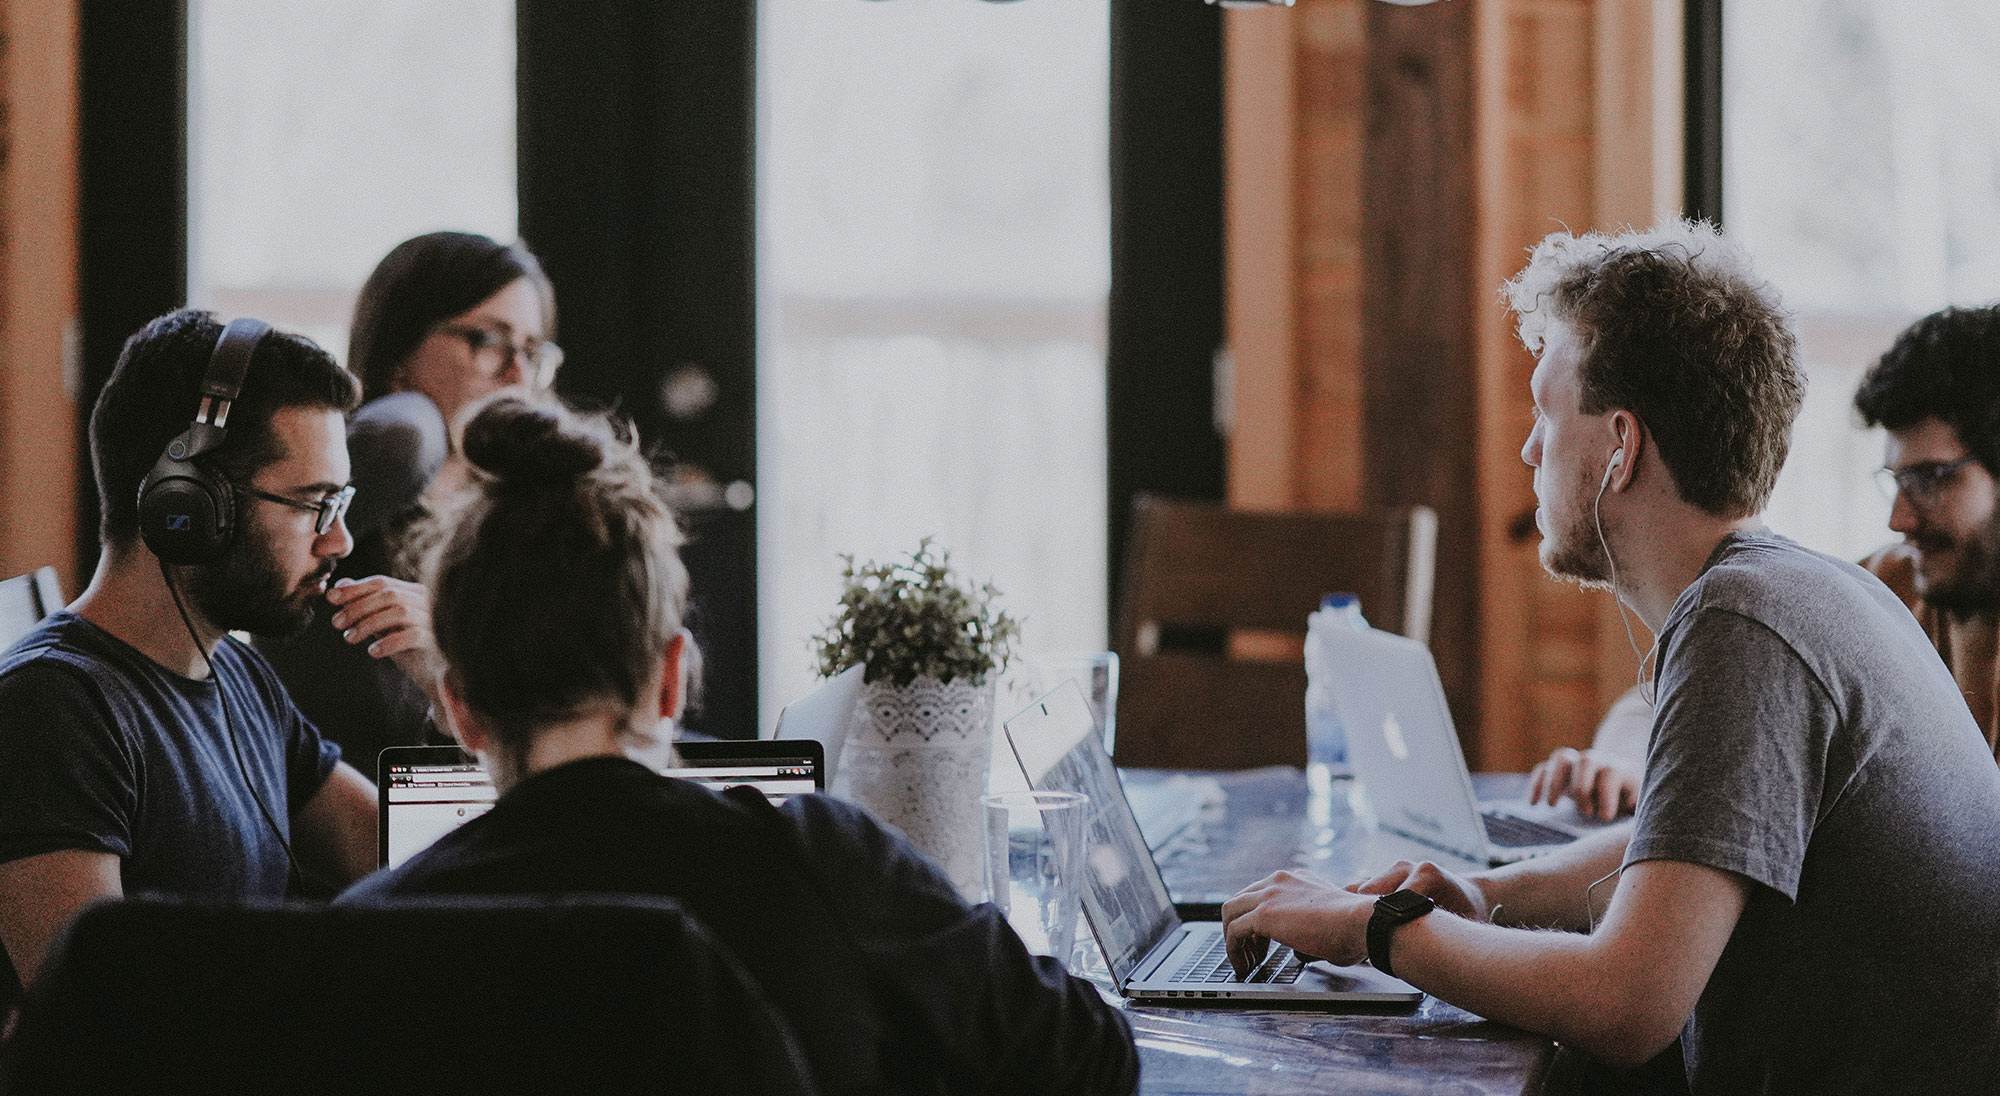 How To Build A Social Media Team For Your Church (5 Crucial Tips)